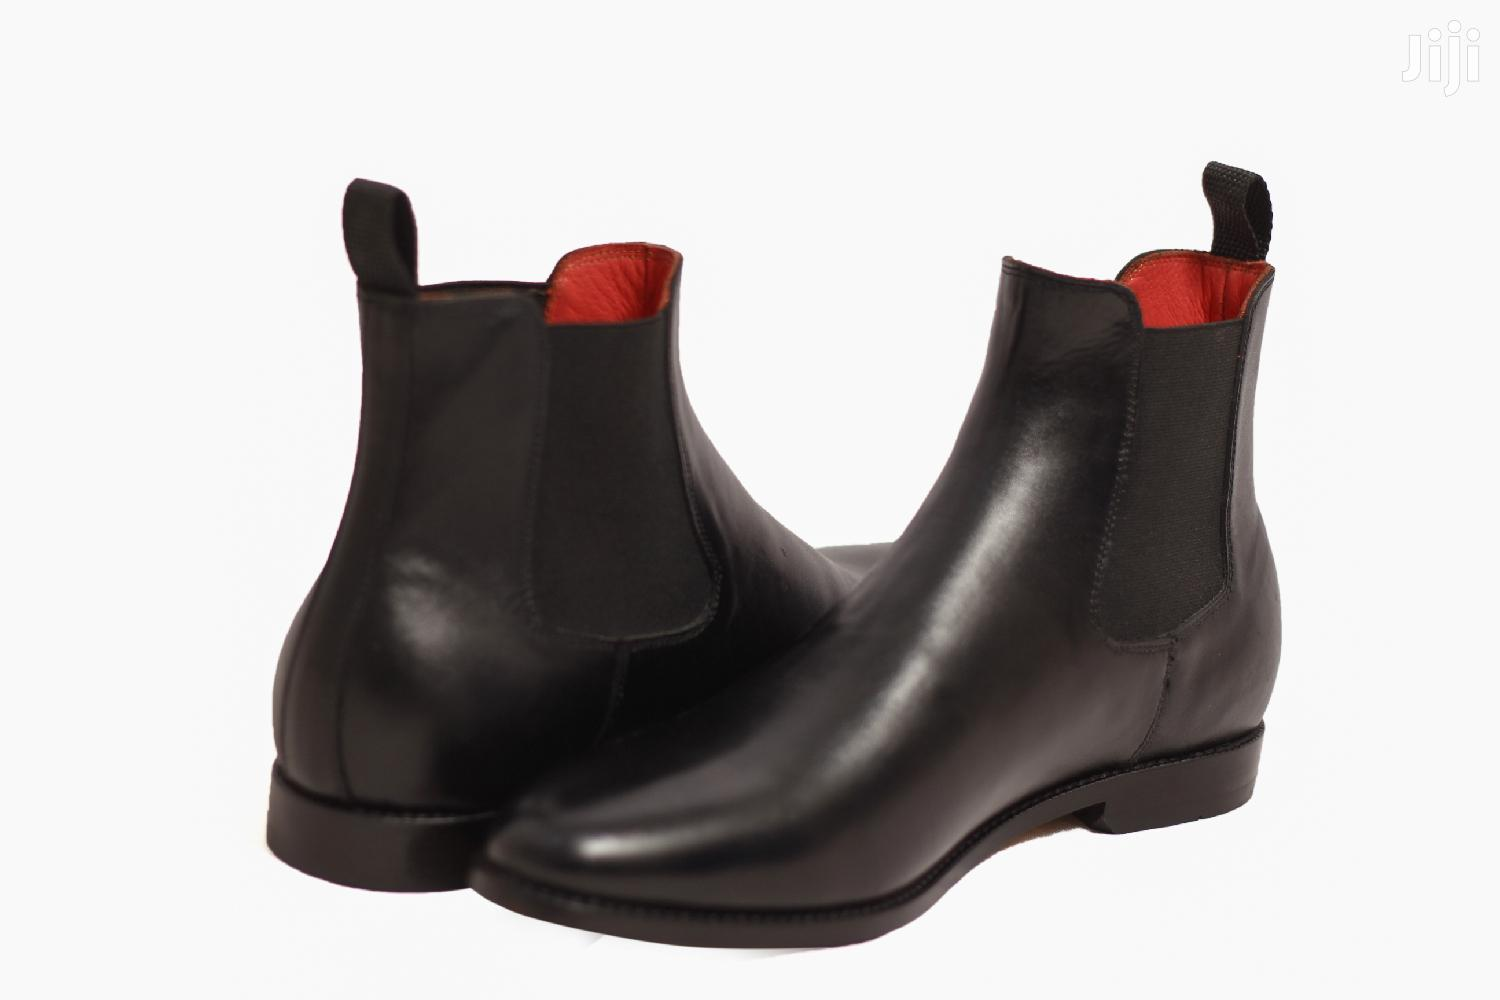 Genuine Leather, Men's Chelsea Boots | Shoes for sale in Accra Metropolitan, Greater Accra, Ghana